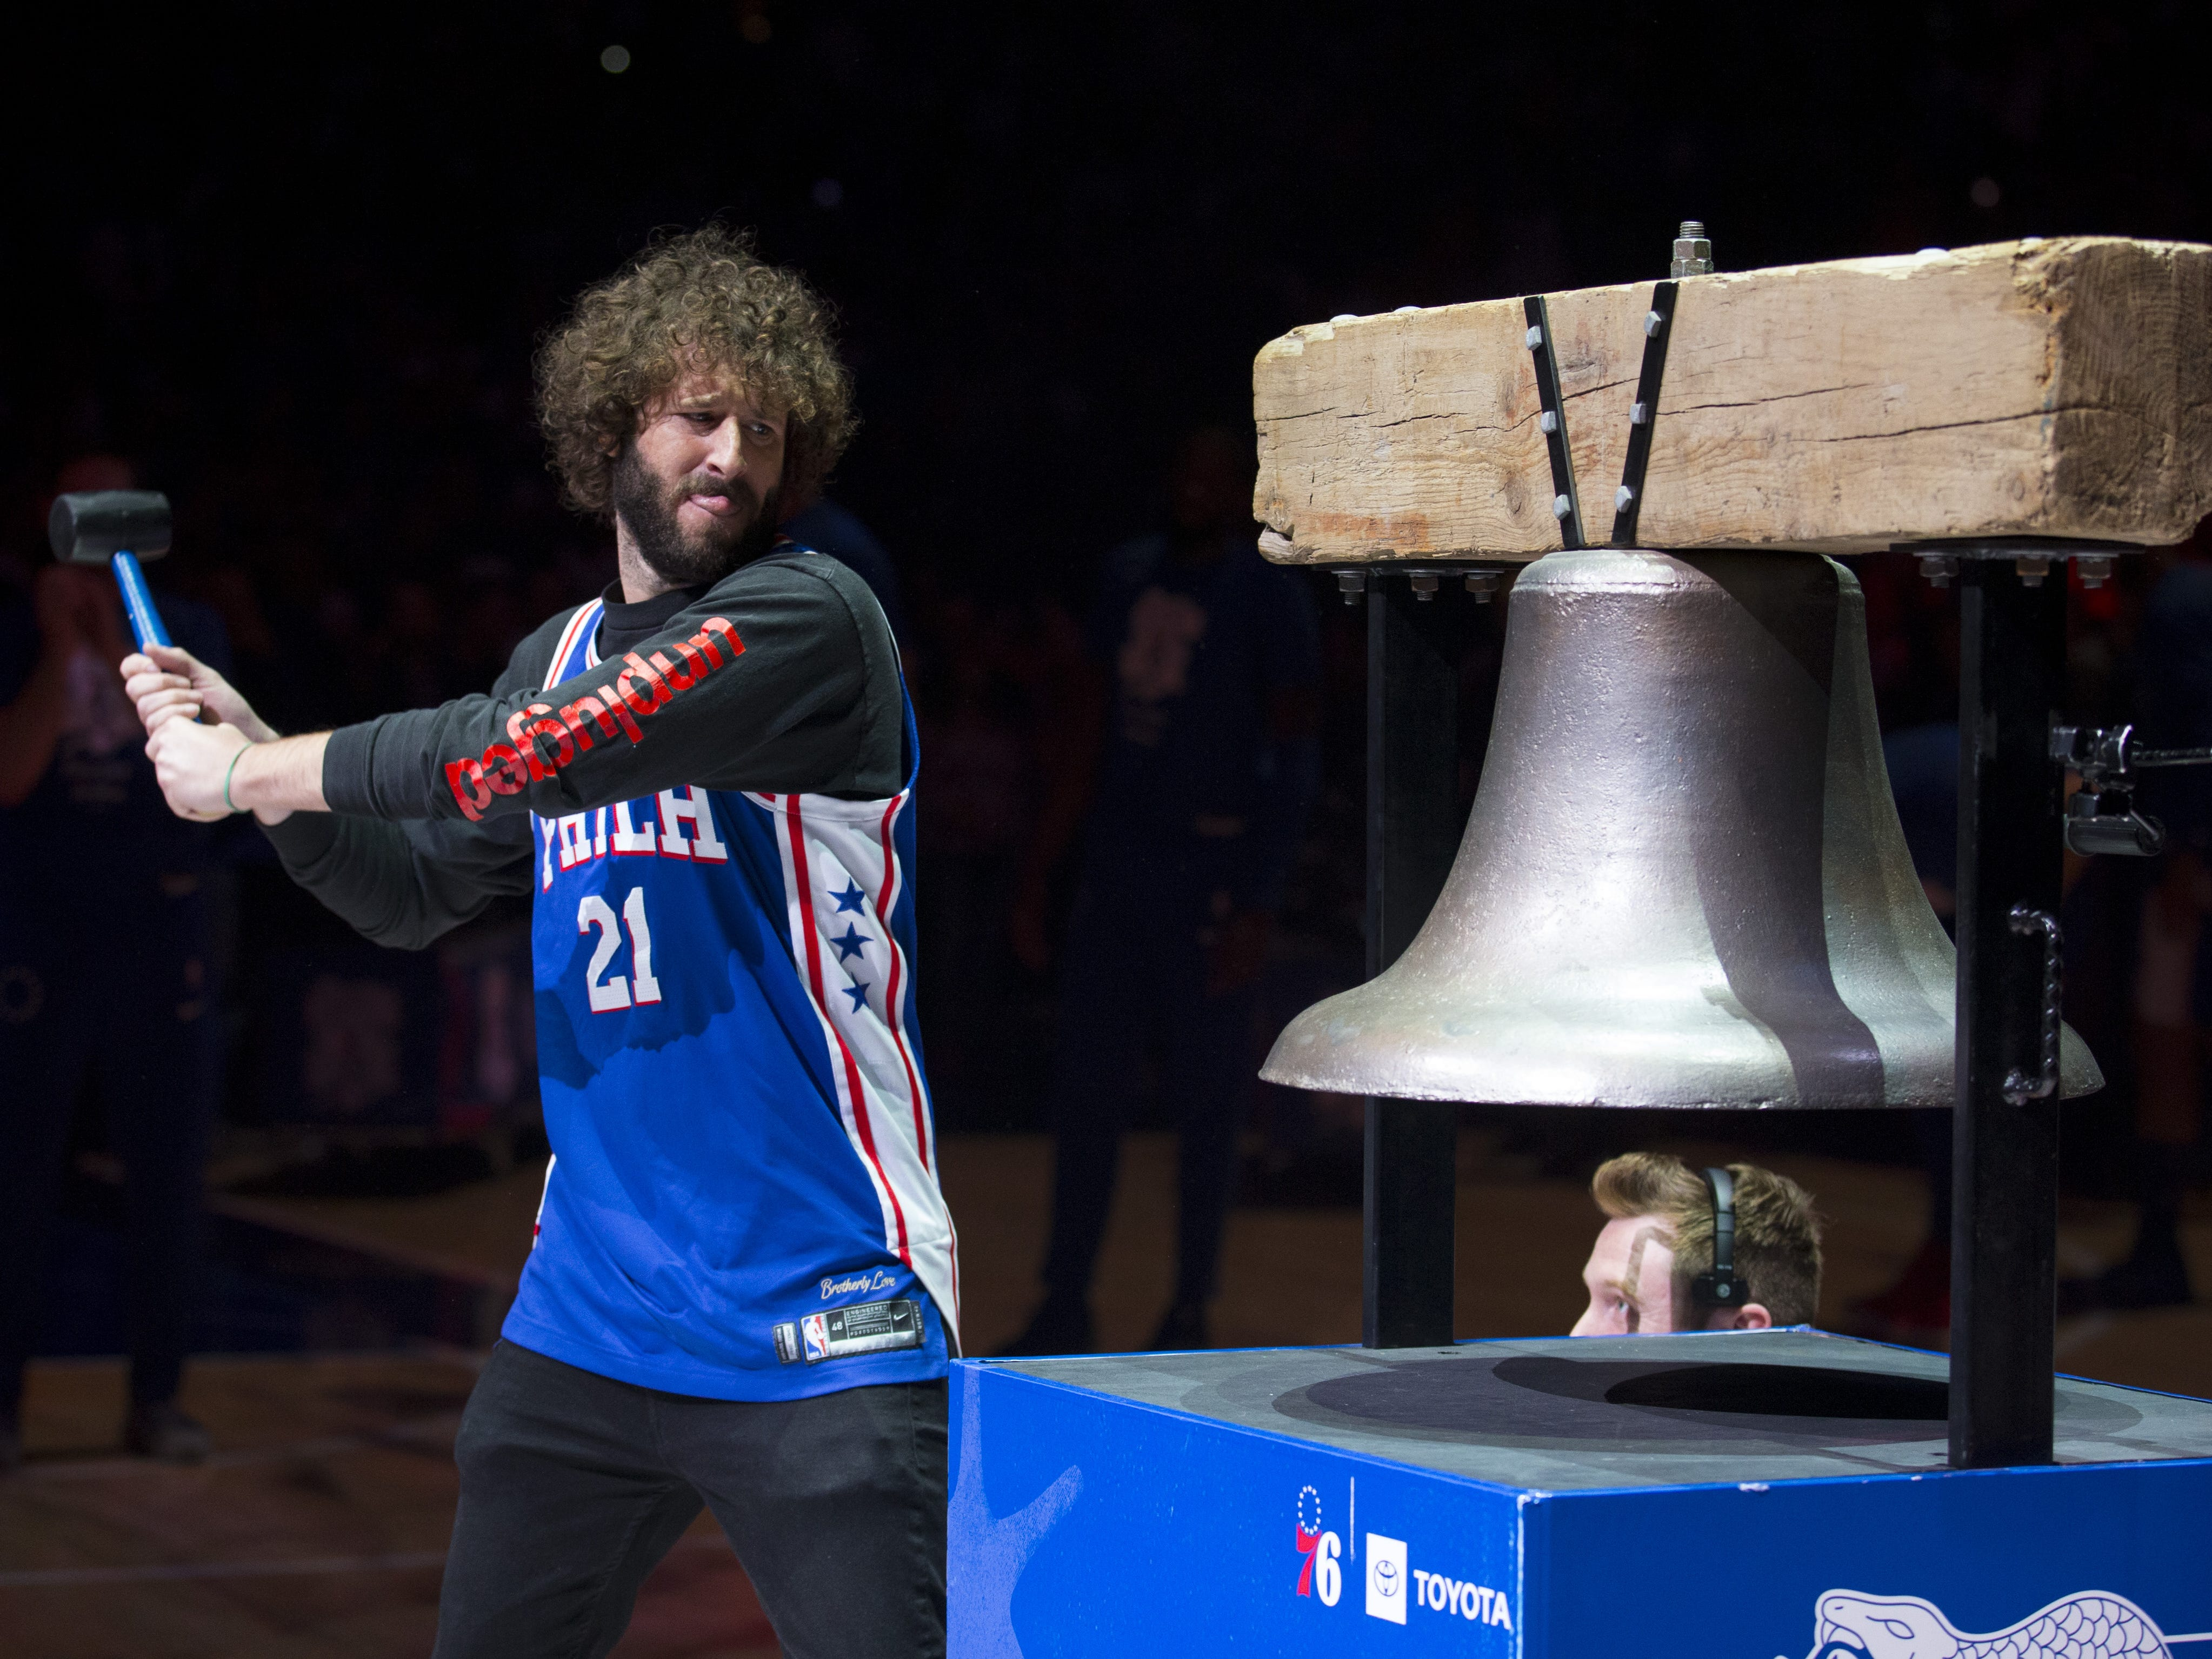 April 23: Rapper Lil Dicky rings the bell prior to Game 5 between the Nets and 76ers in Philadelphia.